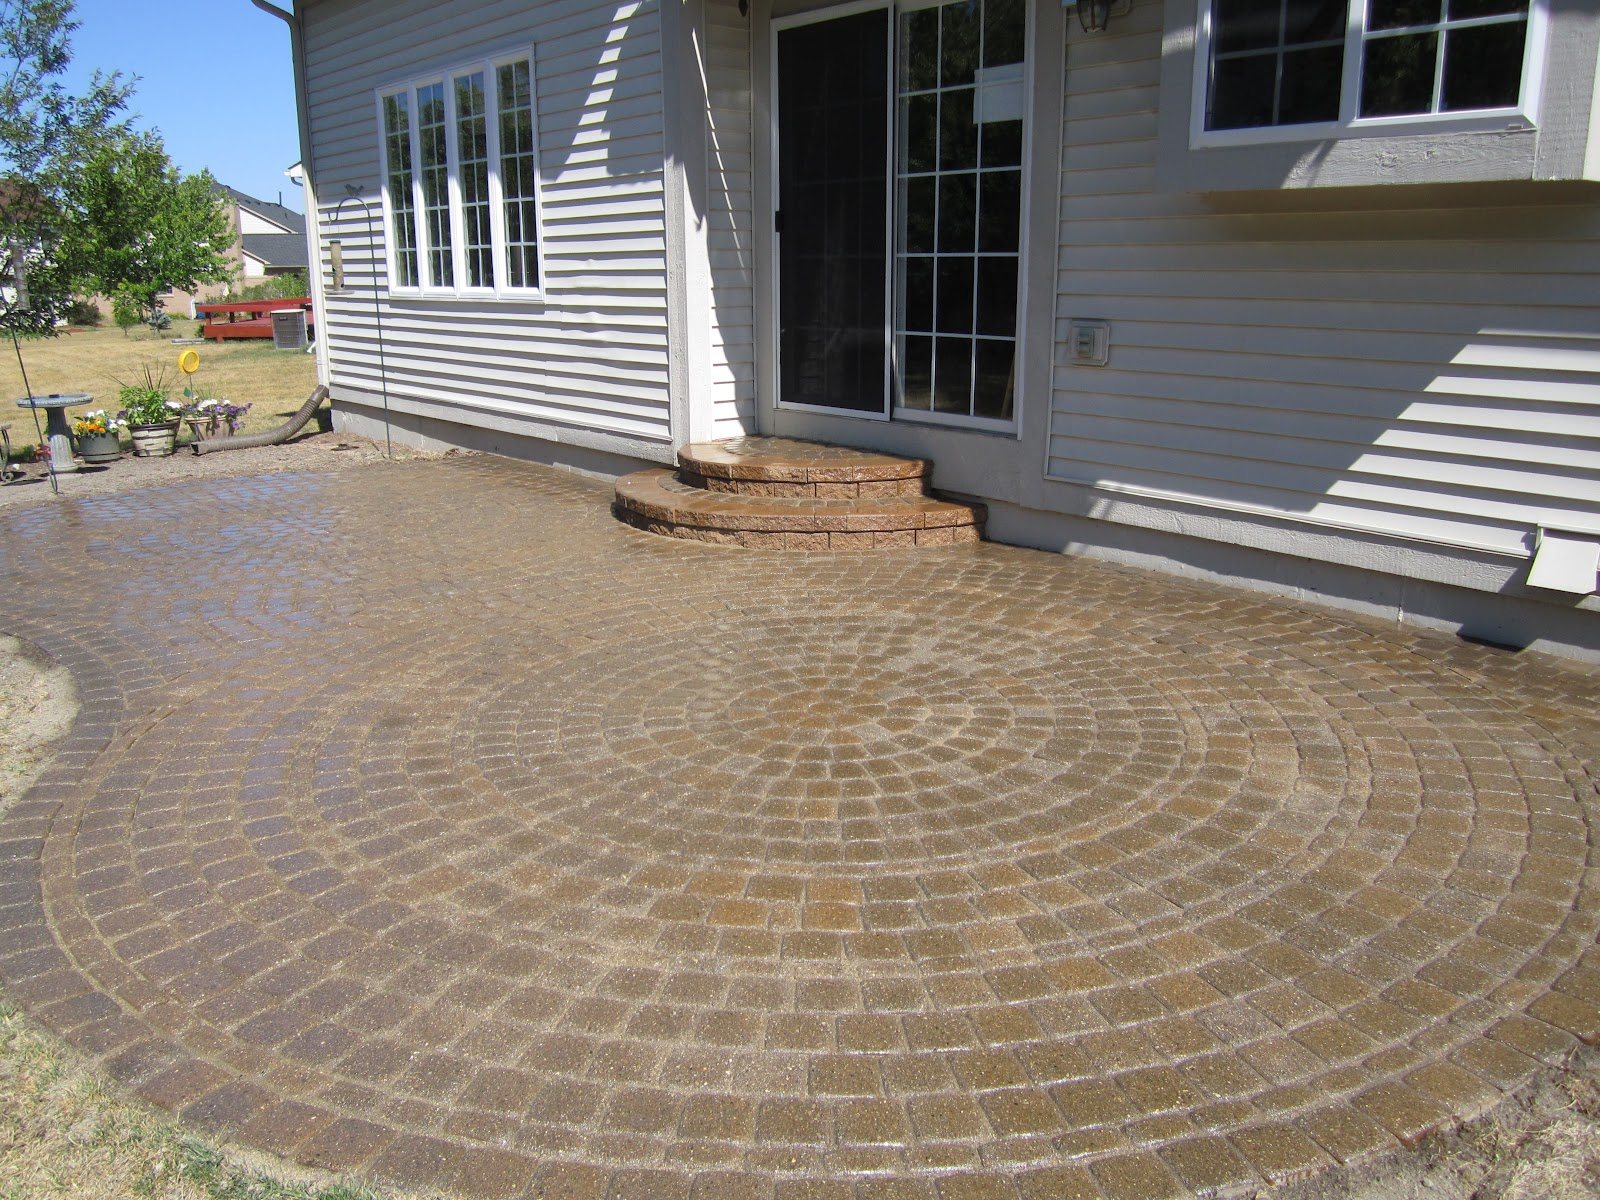 Brick pavers canton plymouth northville novi michigan repair cleaning - Restored Pavers Patio